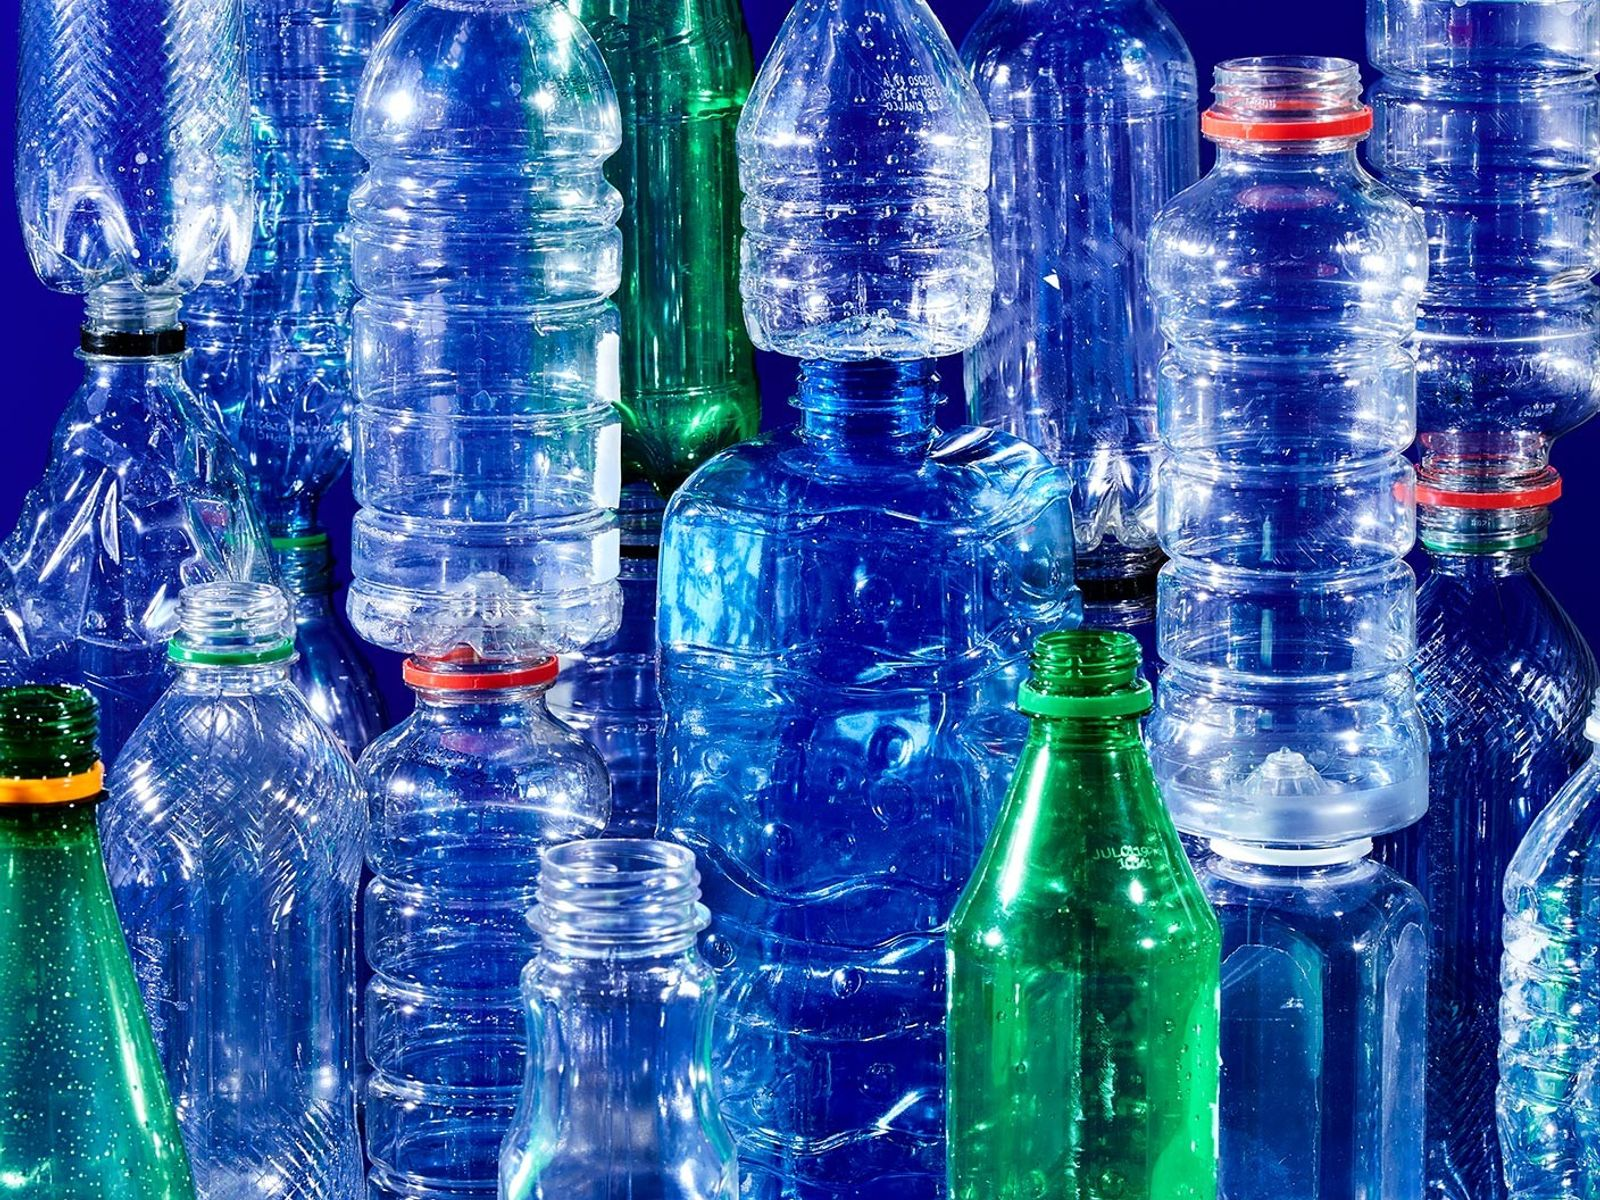 A million plastic drinks bottles were purchased each minute as of 2017. The plastic bottle's journey ...